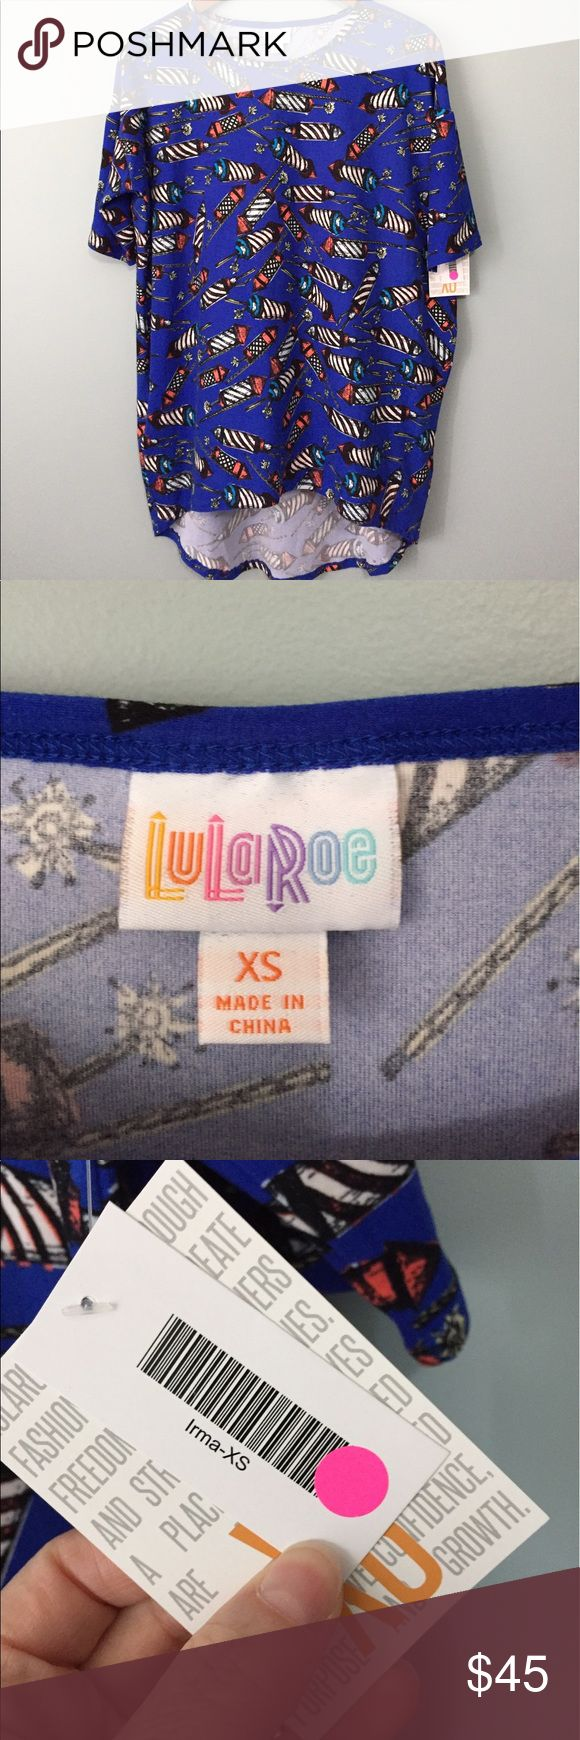 LuLaRoe Americana Irma XS This is from last years Americana capsule line & is leggings material. I typically wear size 14/16 tops & XS Irma but this is too big.  Happy to provide measurements. Ships same or next day. LuLaRoe Tops Tees - Short Sleeve